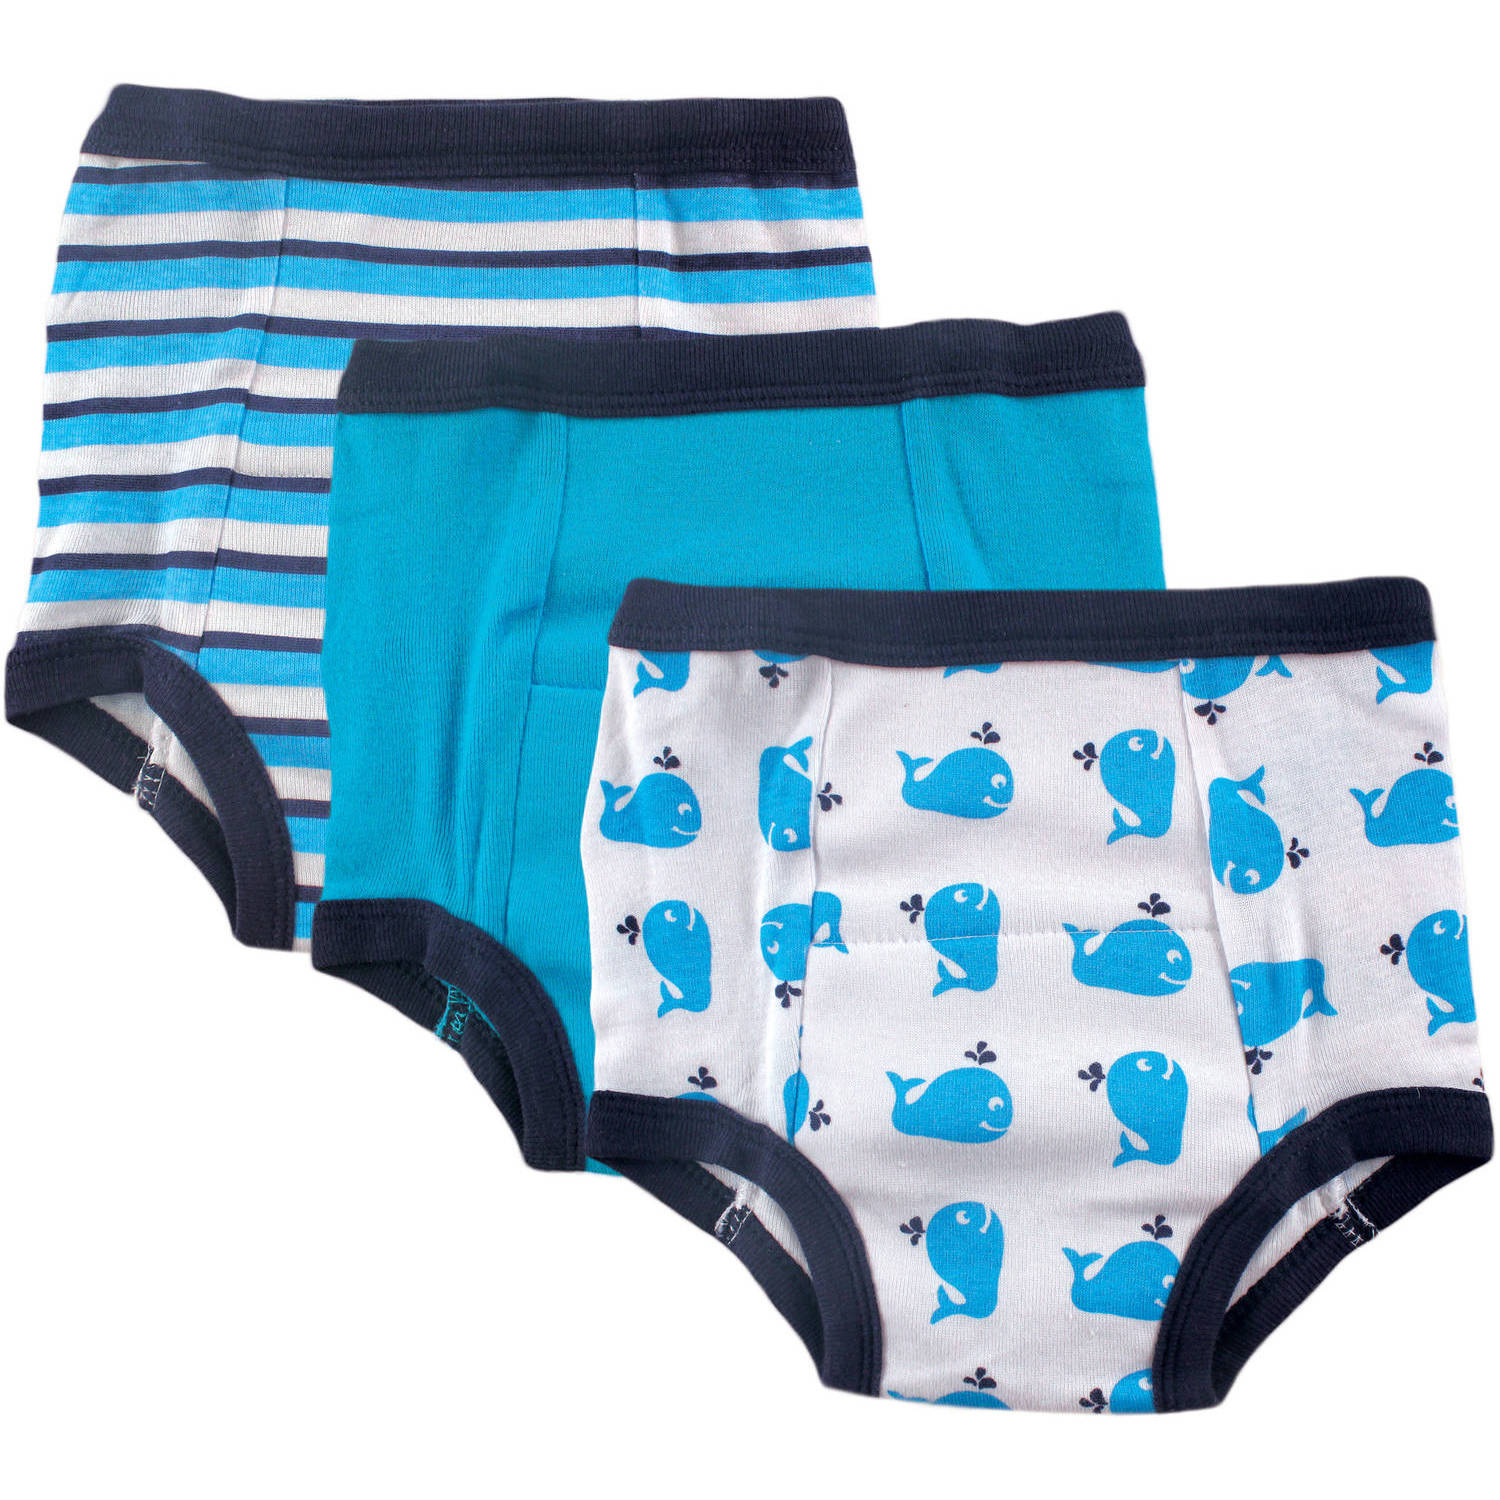 Luvable Friends Water Resistant Baby Potty Training Pants, 3 count, (Choose Your Size & Color)